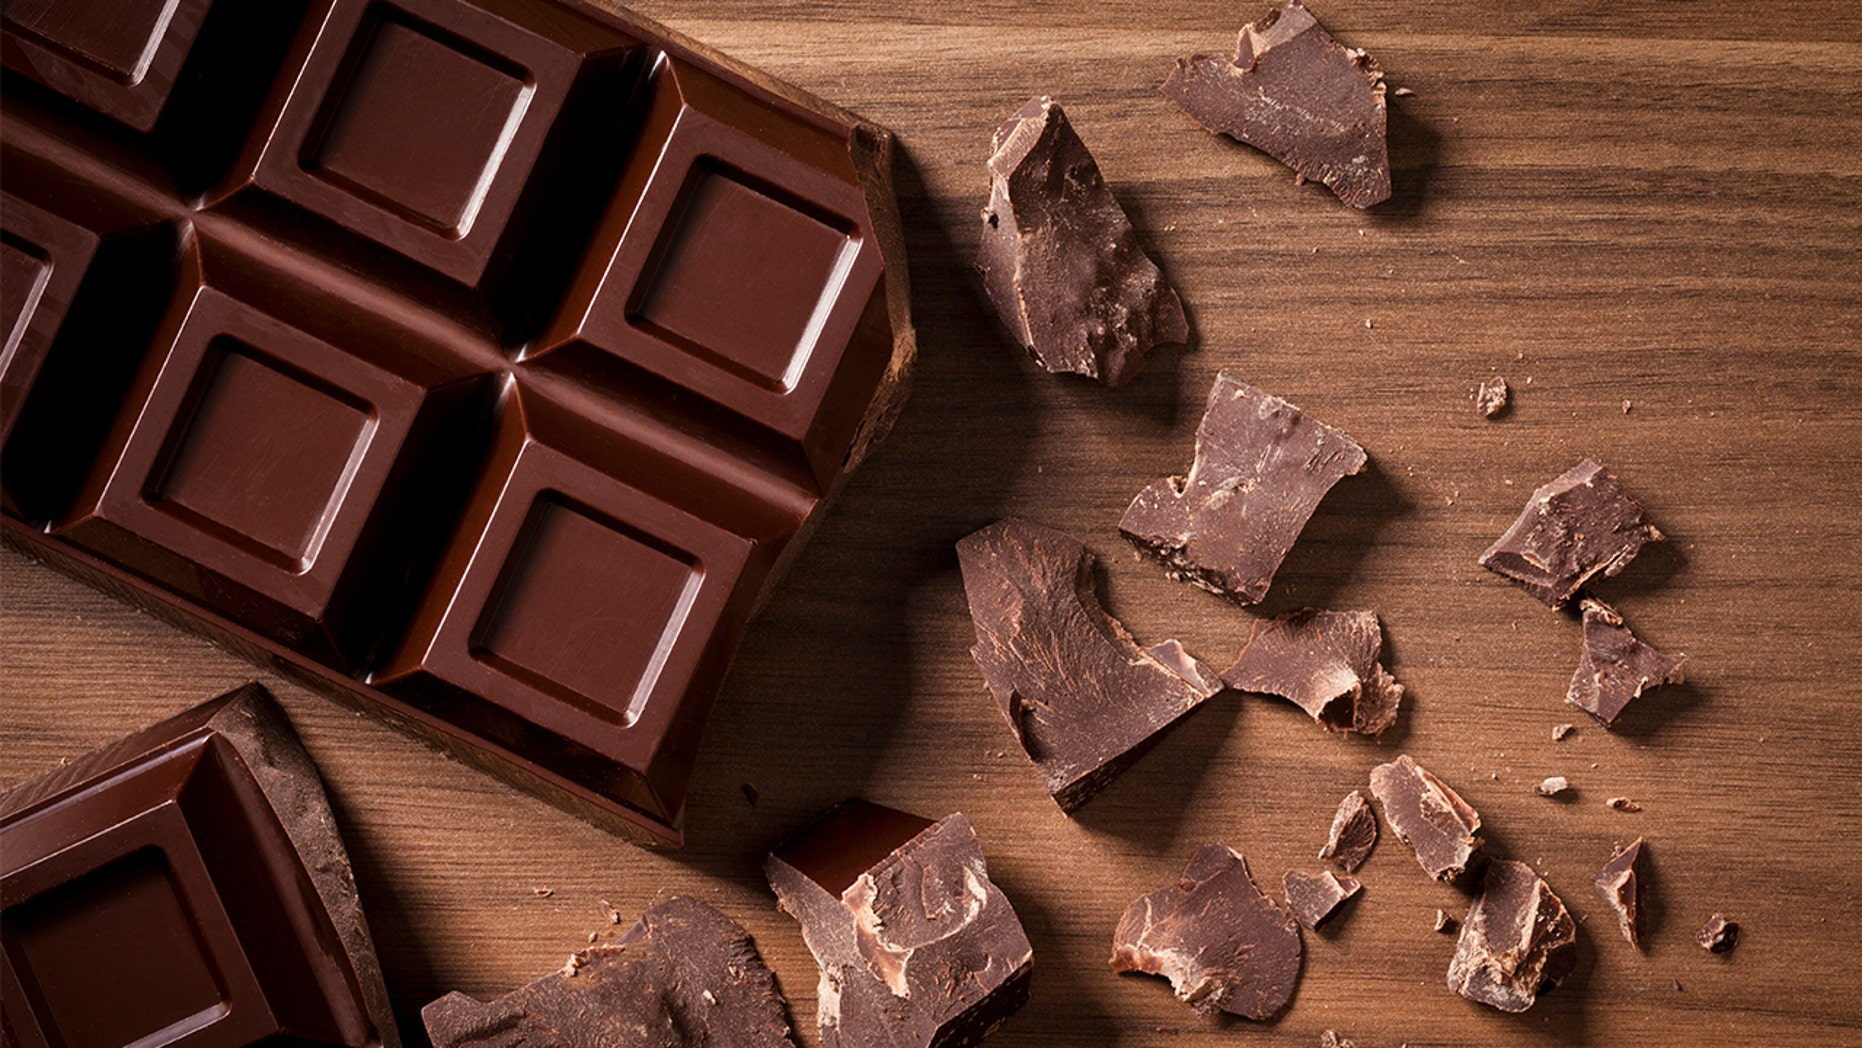 A woman was fired from her job for eating a coworker's chocolate bar